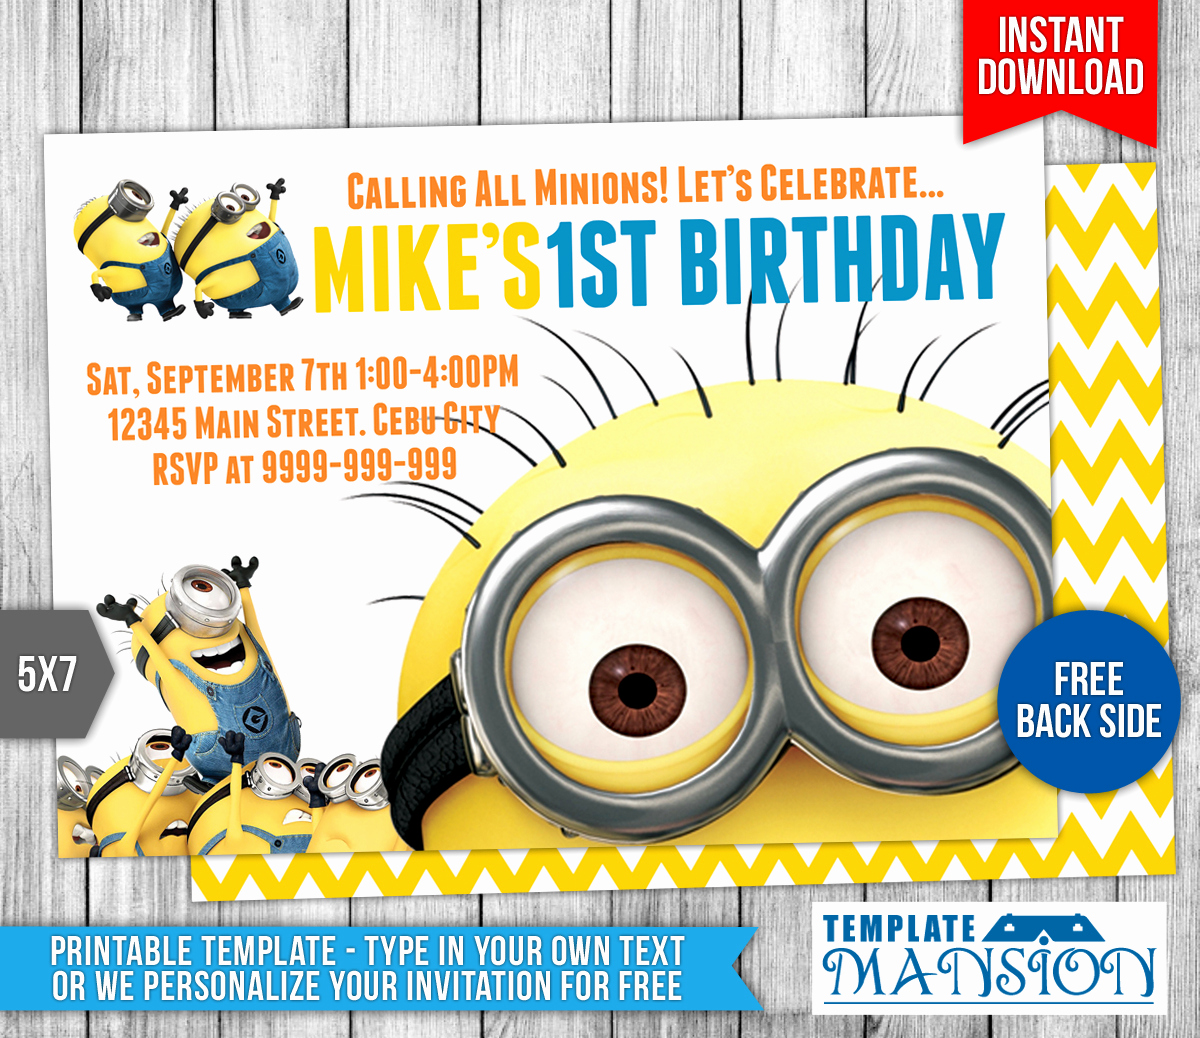 Free Minion Invitation Template New Minions Birthday Invitation 6 by Templatemansion On